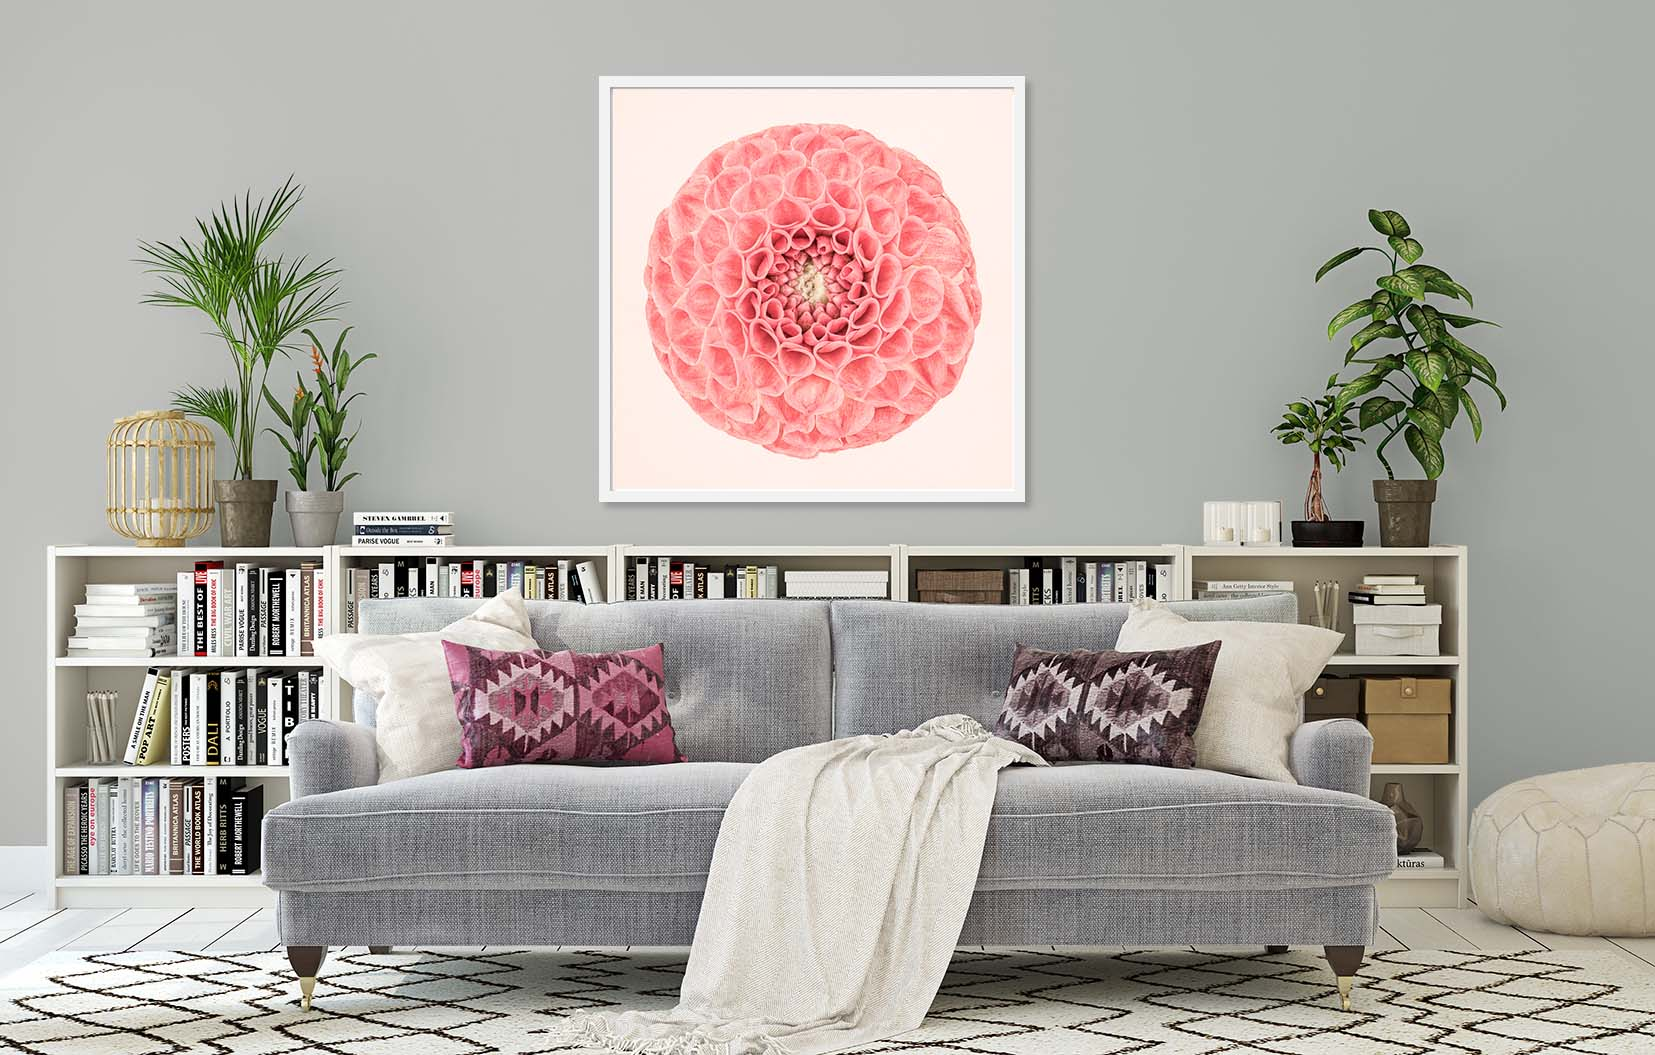 Pink Dahlia Circle II. Limited edition fine art print of a pink dahlia. Image shows a pink dahlia print and a pink and yellow dahlia print. Botanical prints and floral studies by fine art photographer Paul Coghlin.